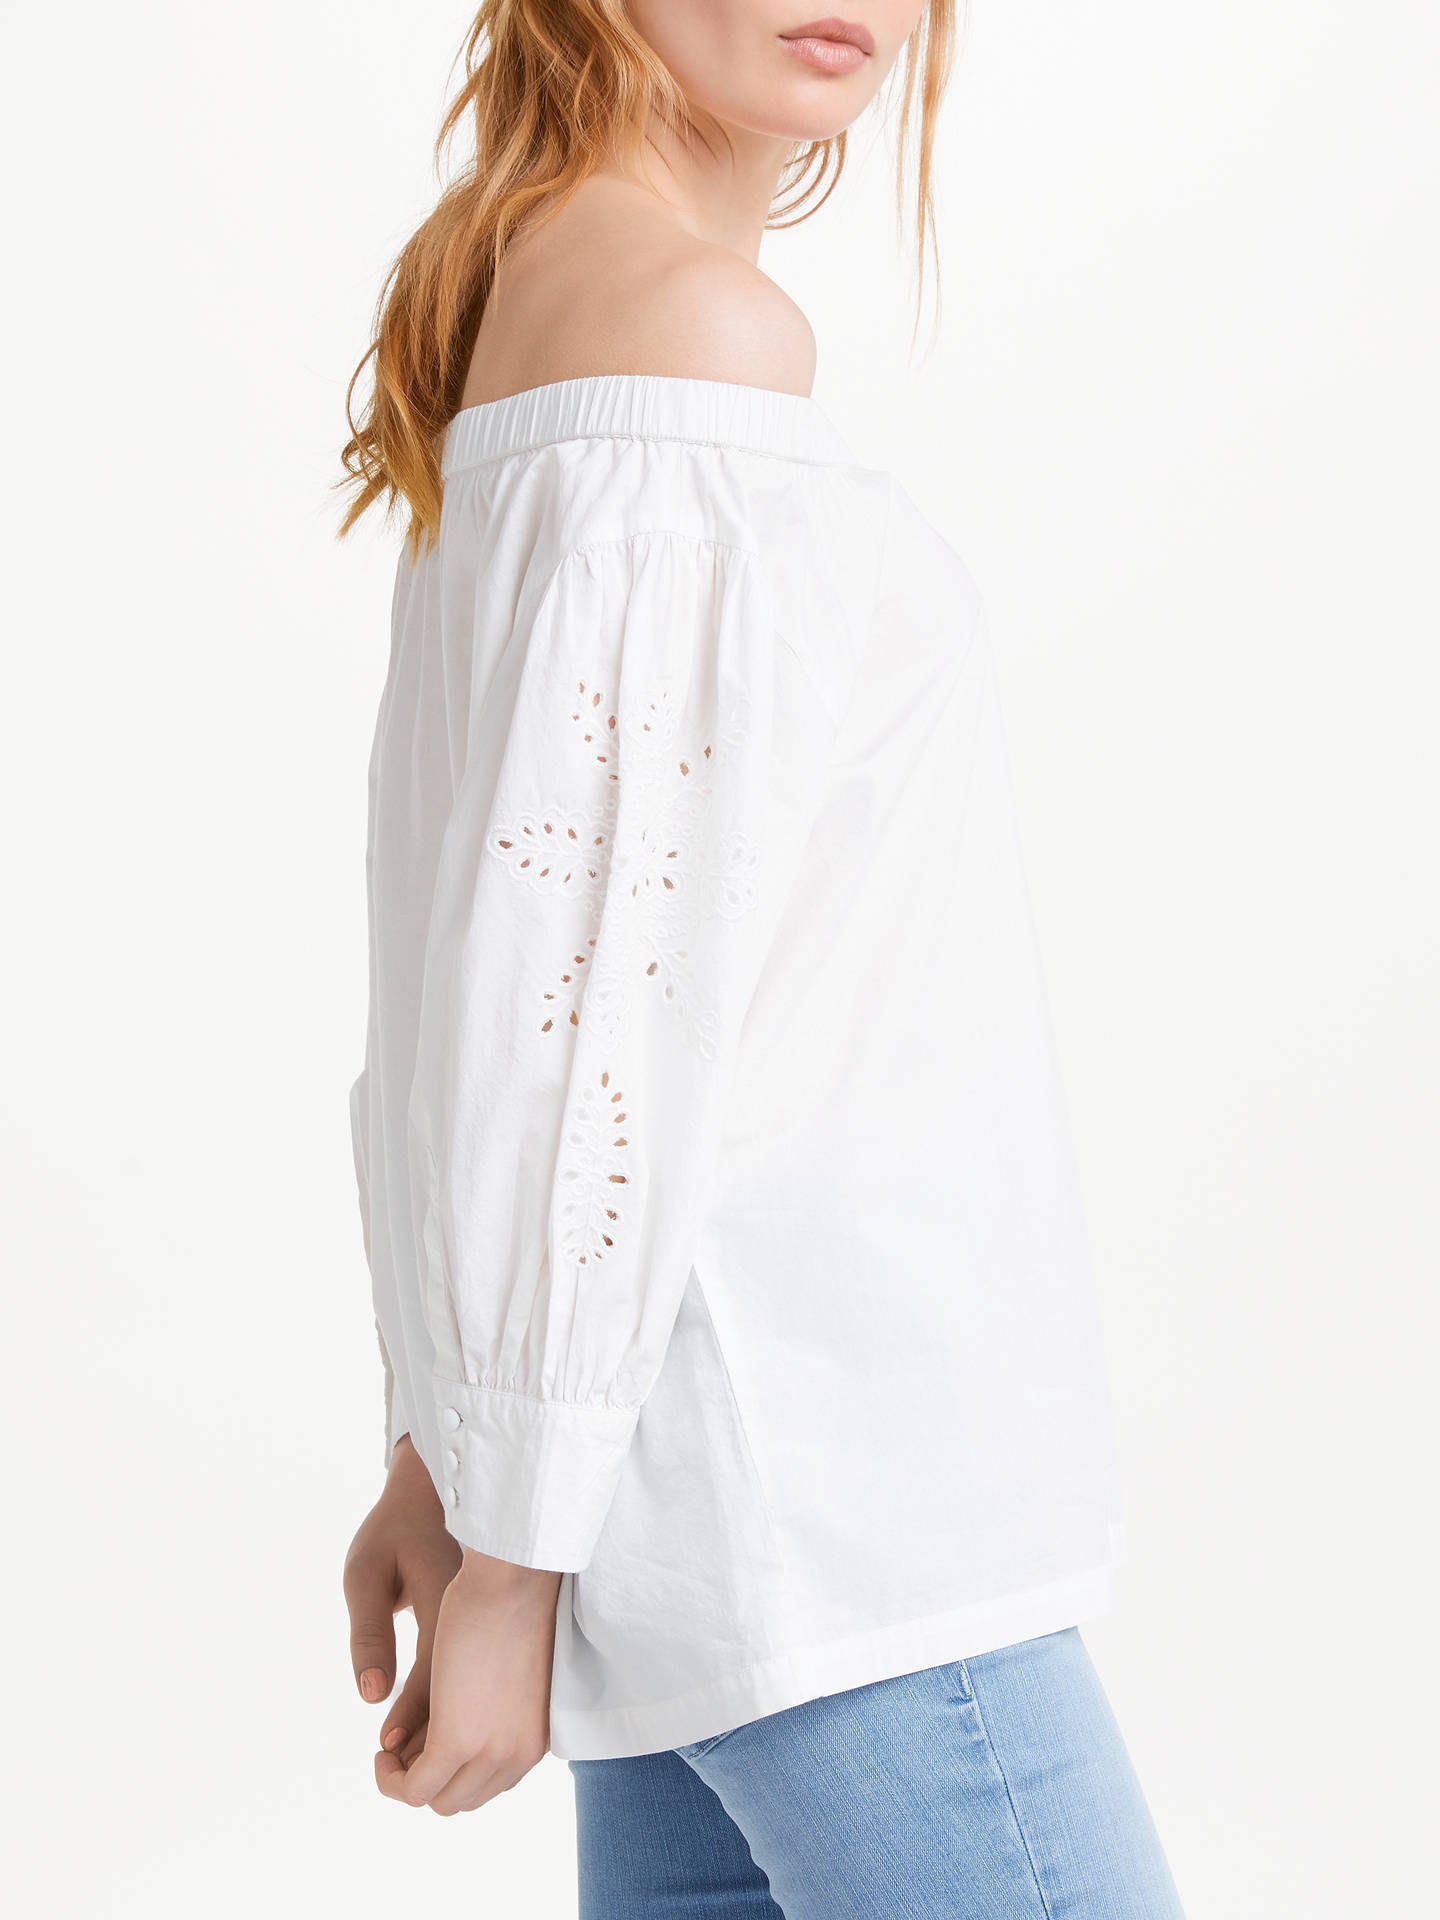 BuyAND/OR Mia Embroidered Top, White, 8 Online at johnlewis.com